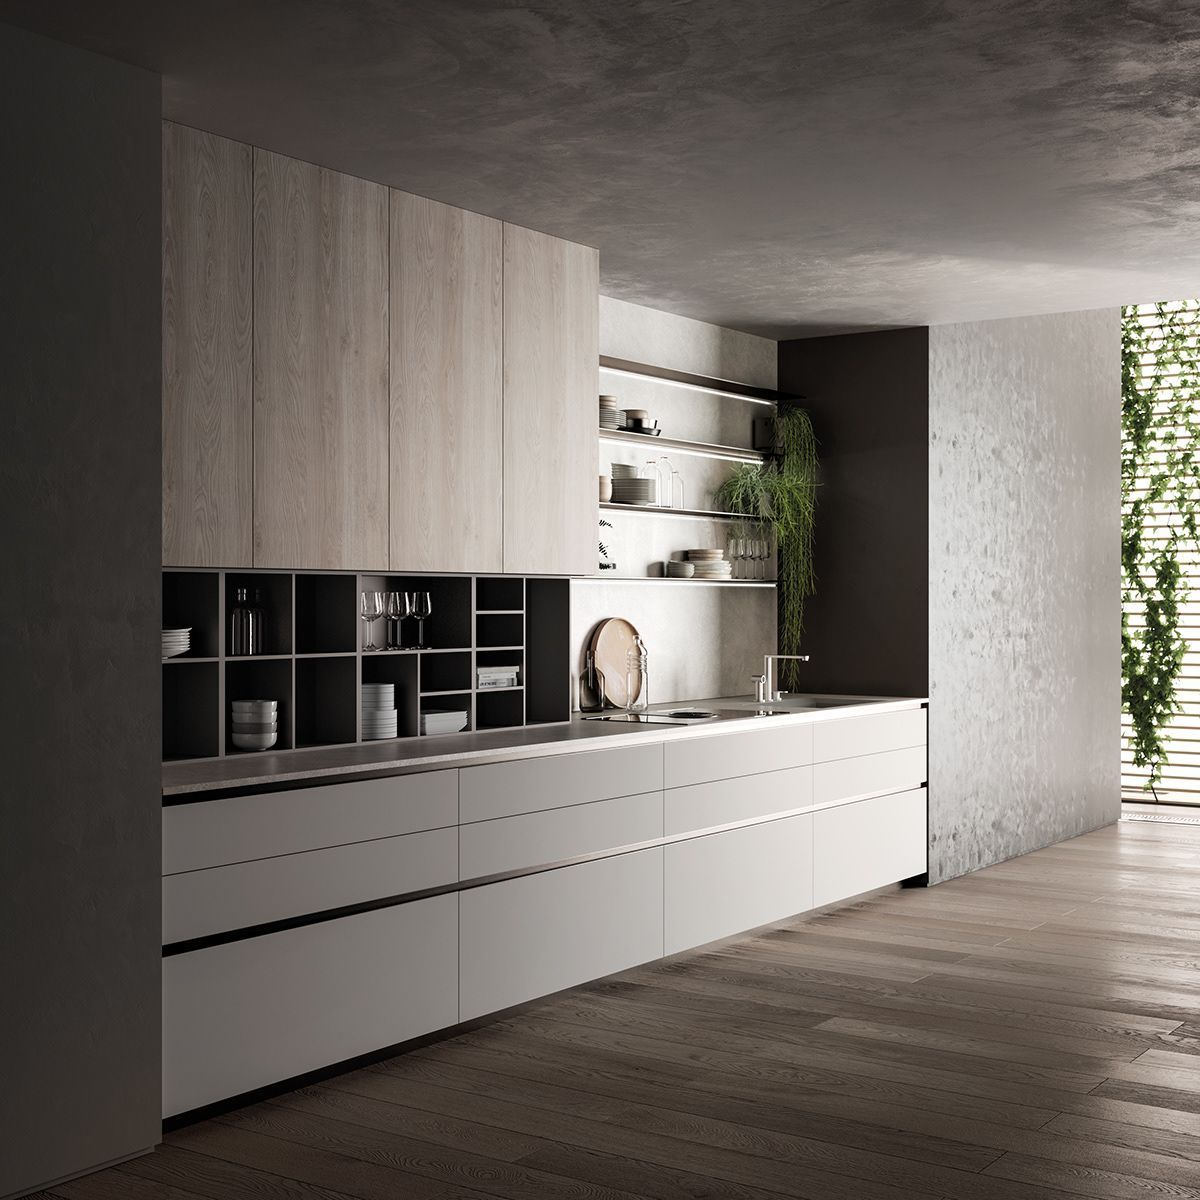 9 Design Kitchen Set That You Can Try in Your Home - toboto.net